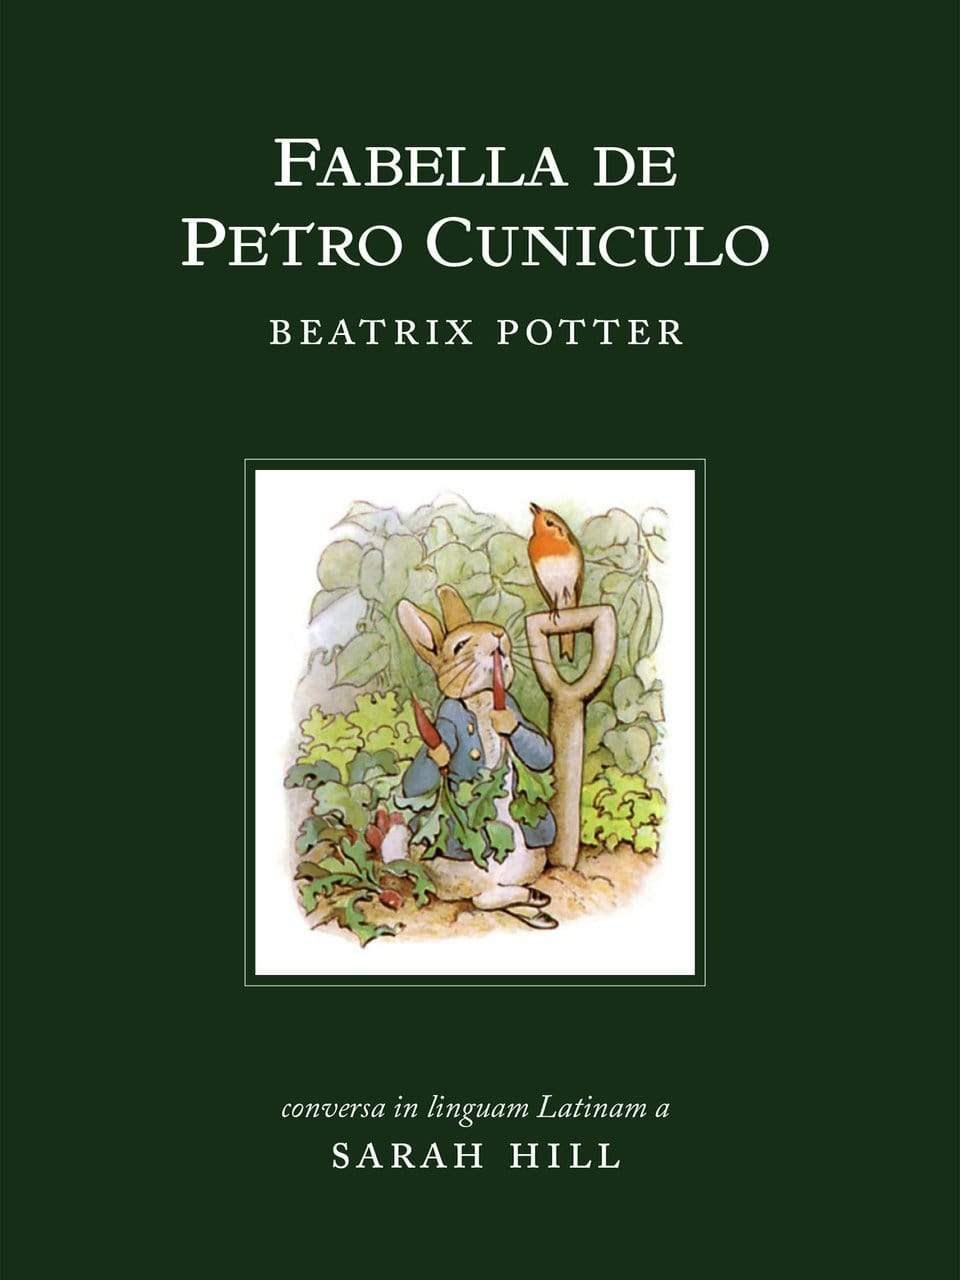 Fabella de Petro Cuniculo (The Tale of Peter Rabbit)